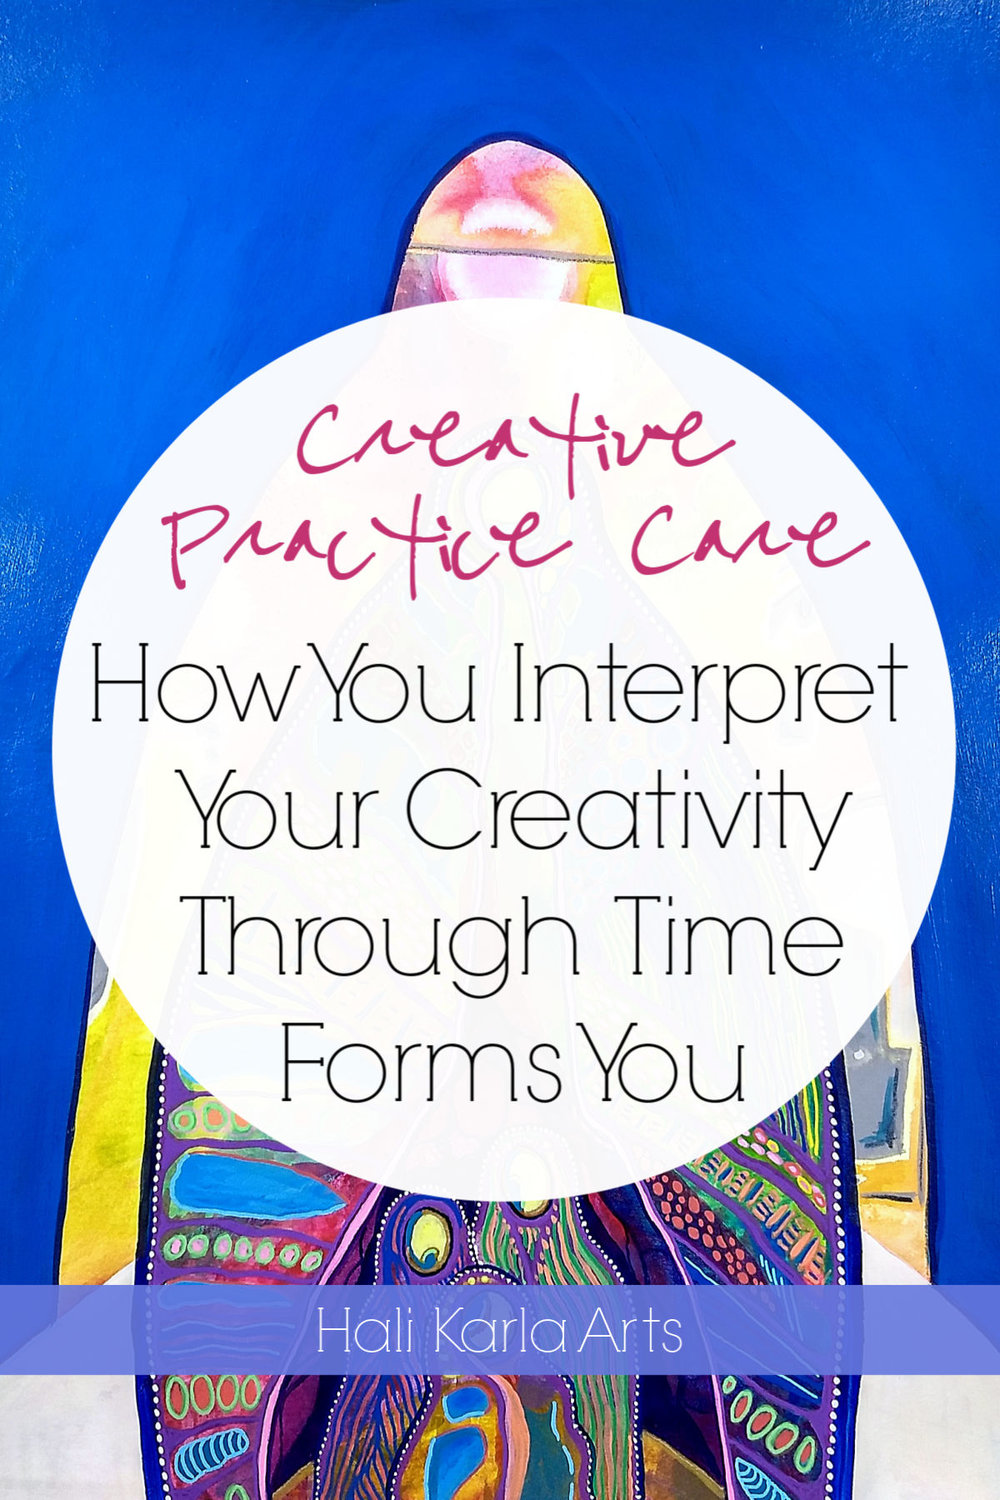 How You interpret your creativity through time forms you | Creative Practice Care with Hali Karla Arts